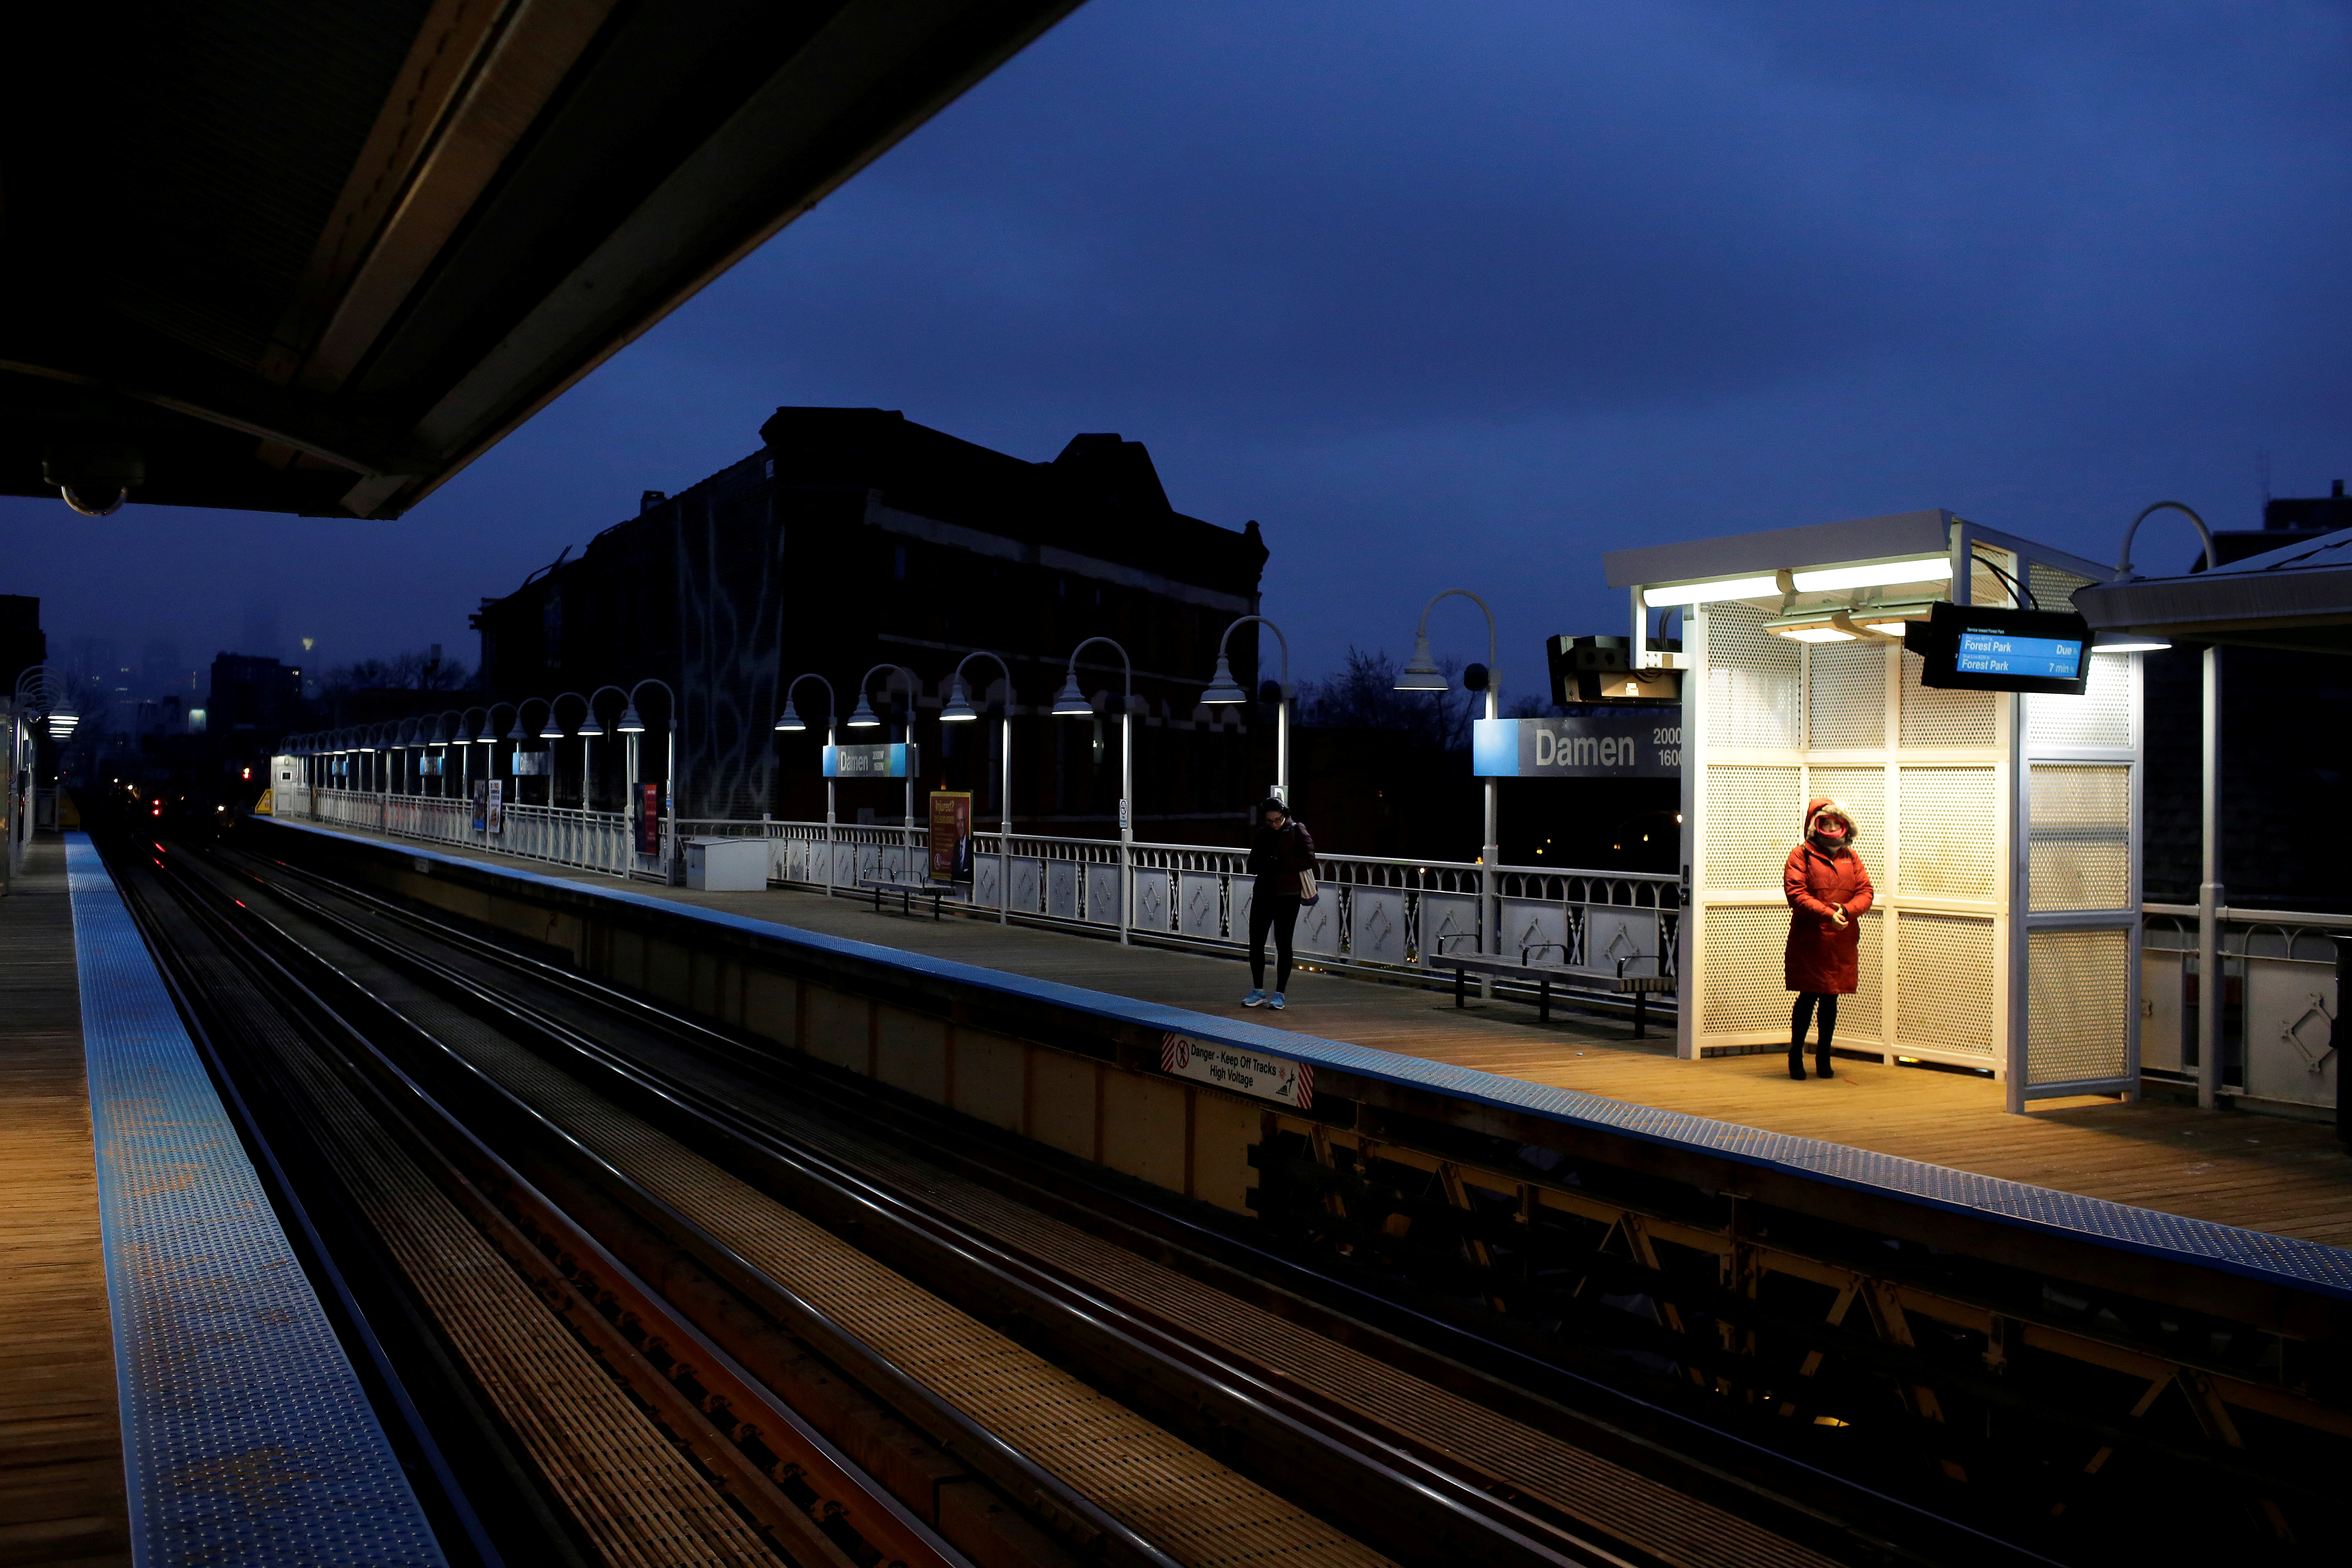 Commuters wait for the Chicago Transit Authority Blue line train at the Damen Avenue stop in Chicago, Illinois, U.S. March 16, 2020. REUTERS/Joshua Lott